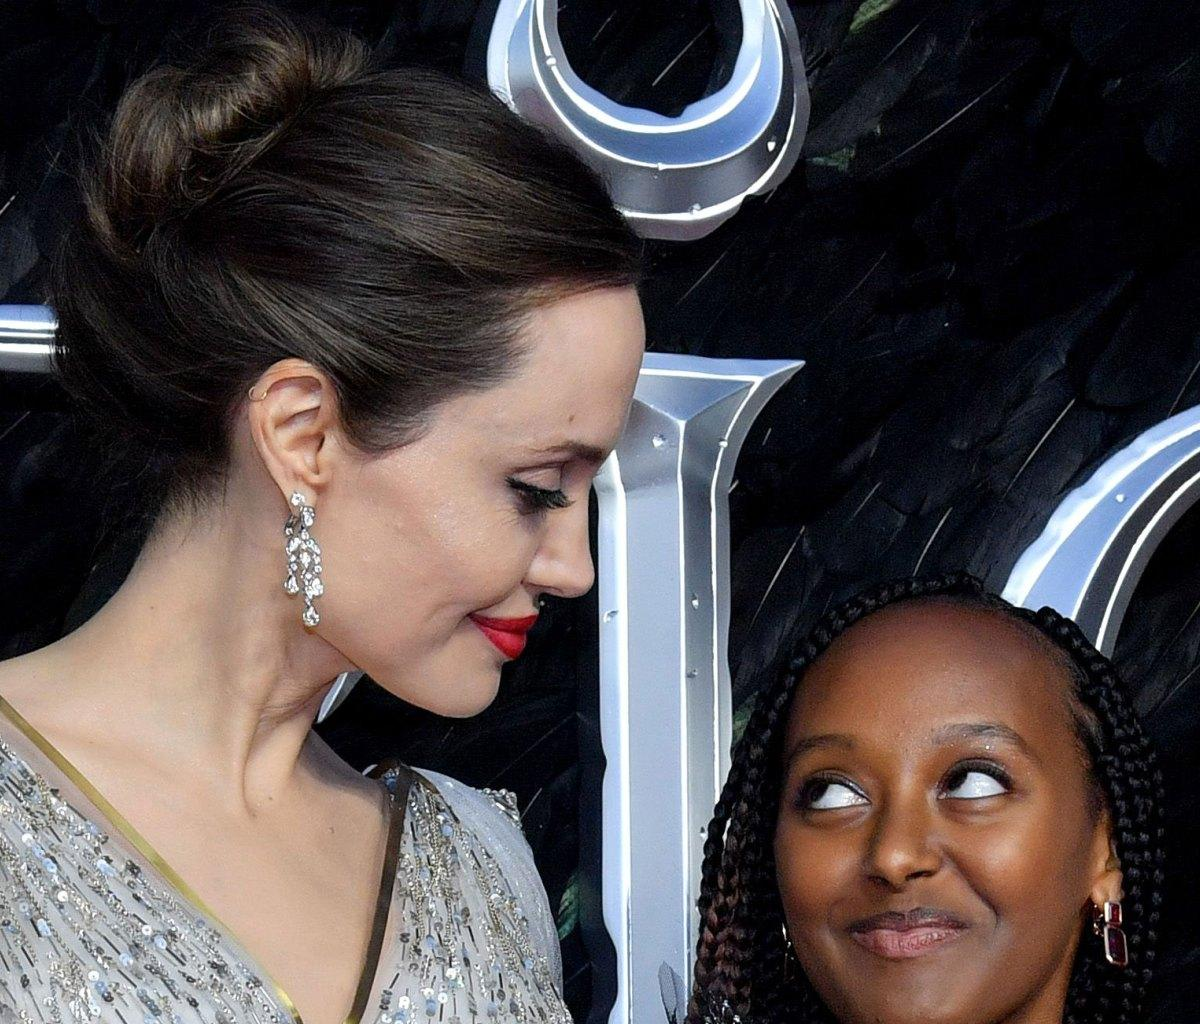 Angelina Jolie And Daughter Zahara Have A Really Special Connection Thanks To This Perfume They Both Like To Wear!